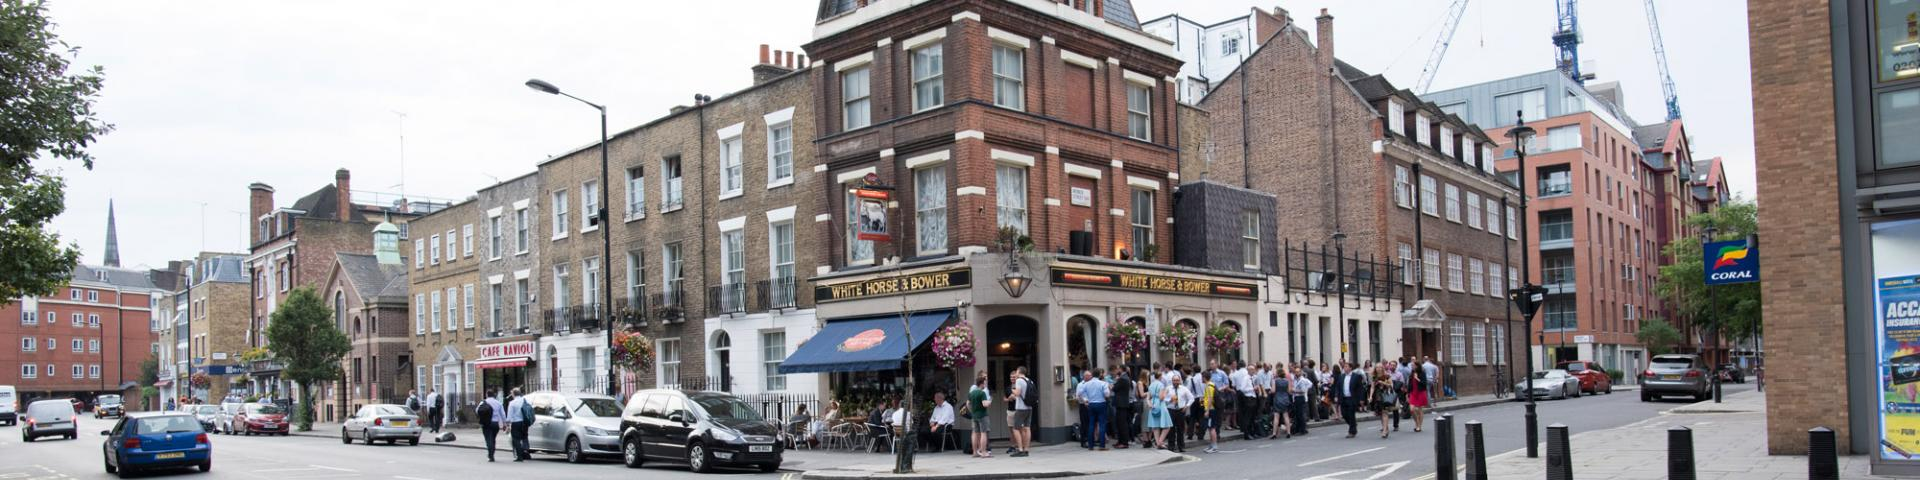 White Horse & Bower, London